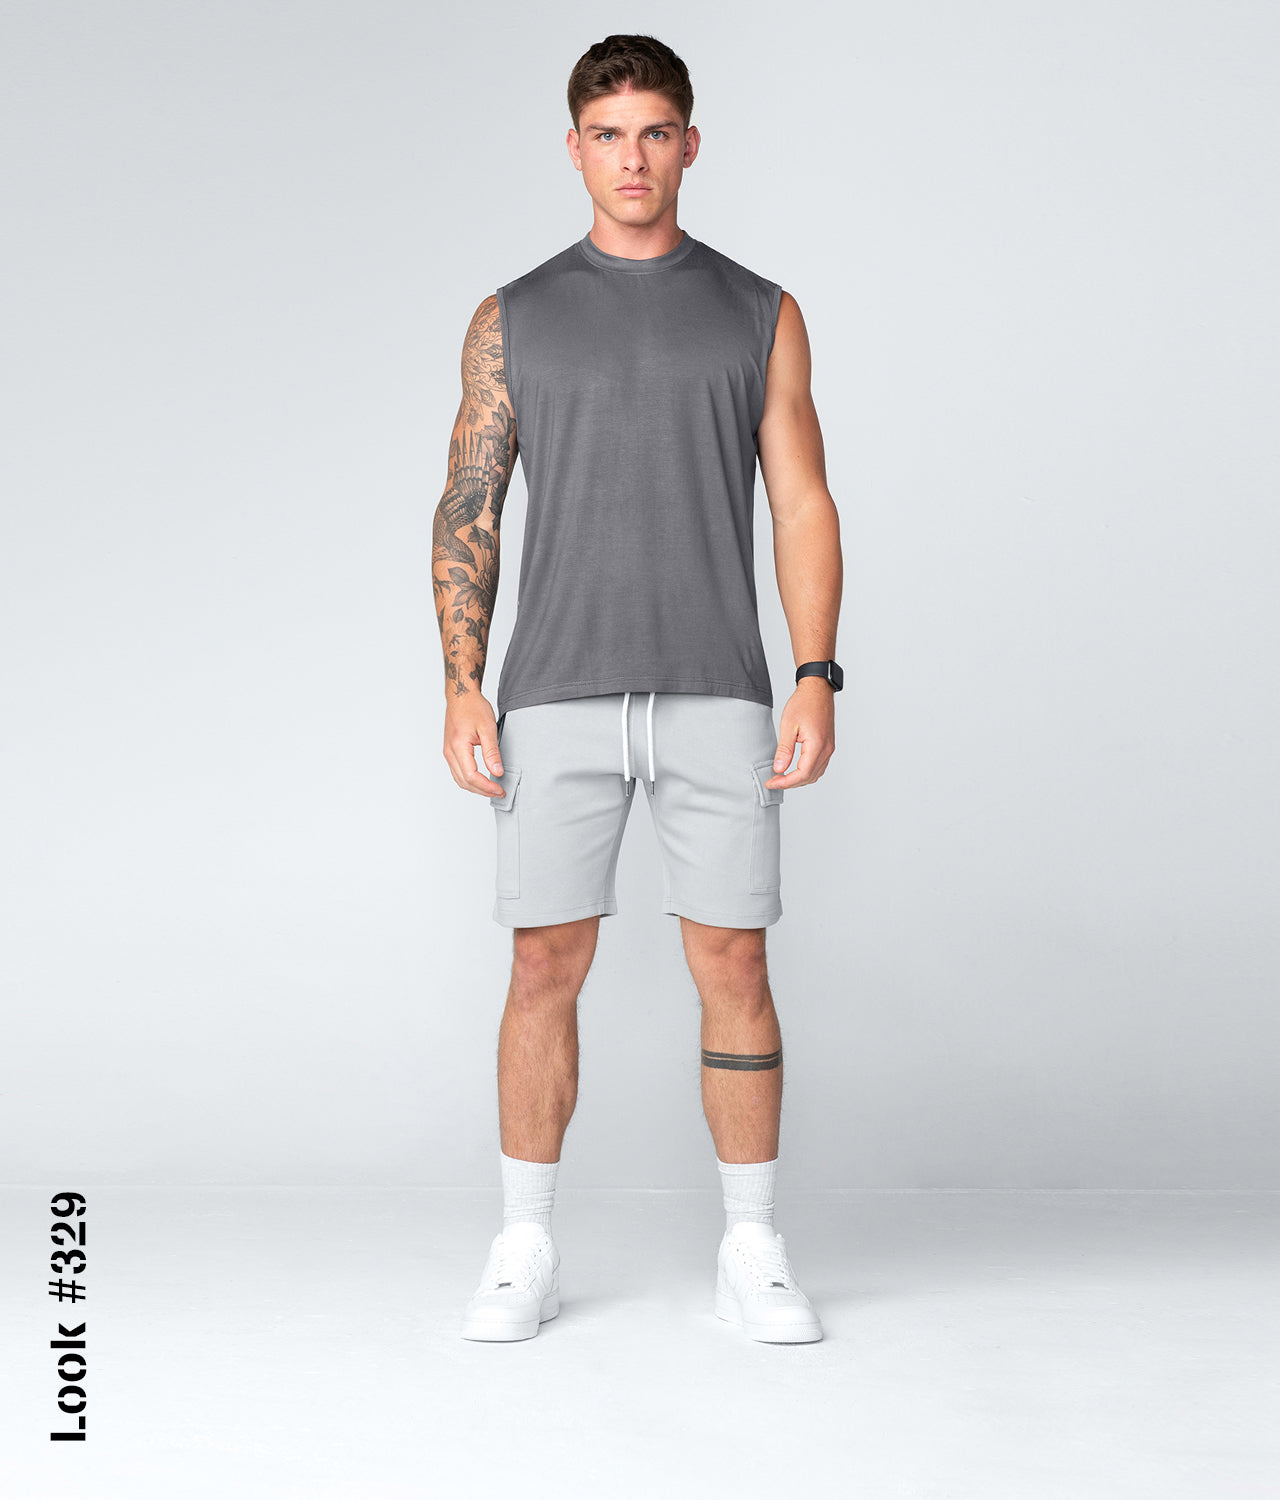 Born Tough Gray Mock Neck Sleeveless Gym Workout Shirt For Men